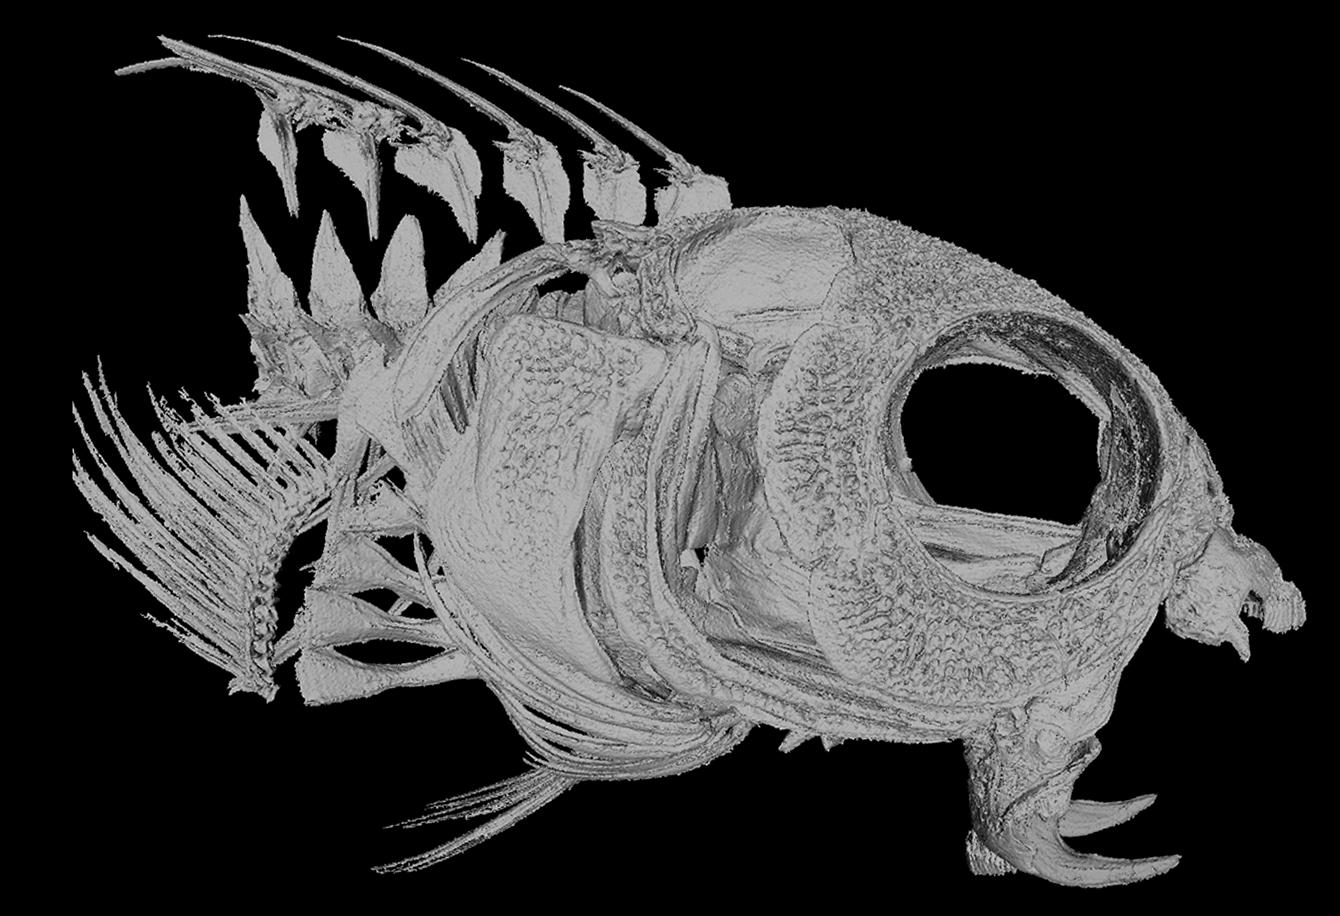 Close up of the skull of the Meiacanthus nigrolineatus, a member of the venomous fang blenny brigade